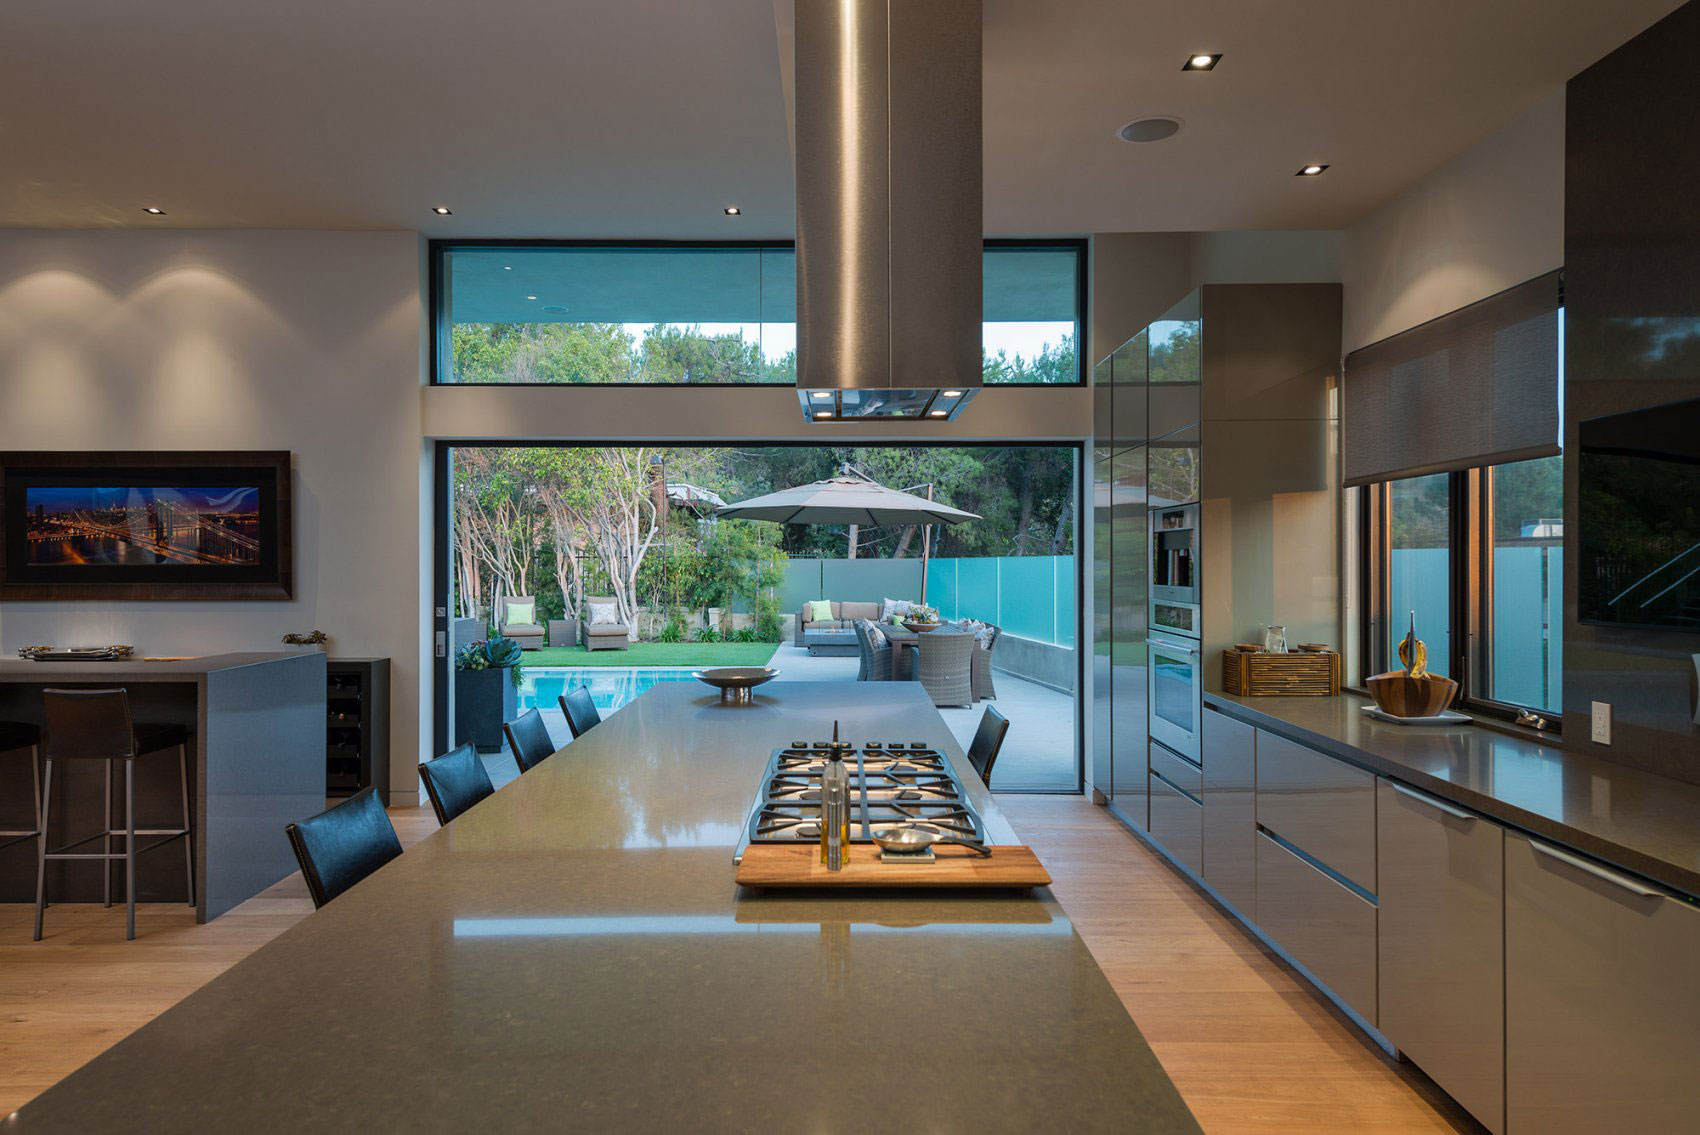 large-modern-kitchen-design-and-cabinet-with-door-drawer-microwave-shelf-plus-island-with-table-and-marble-countertop-ideas